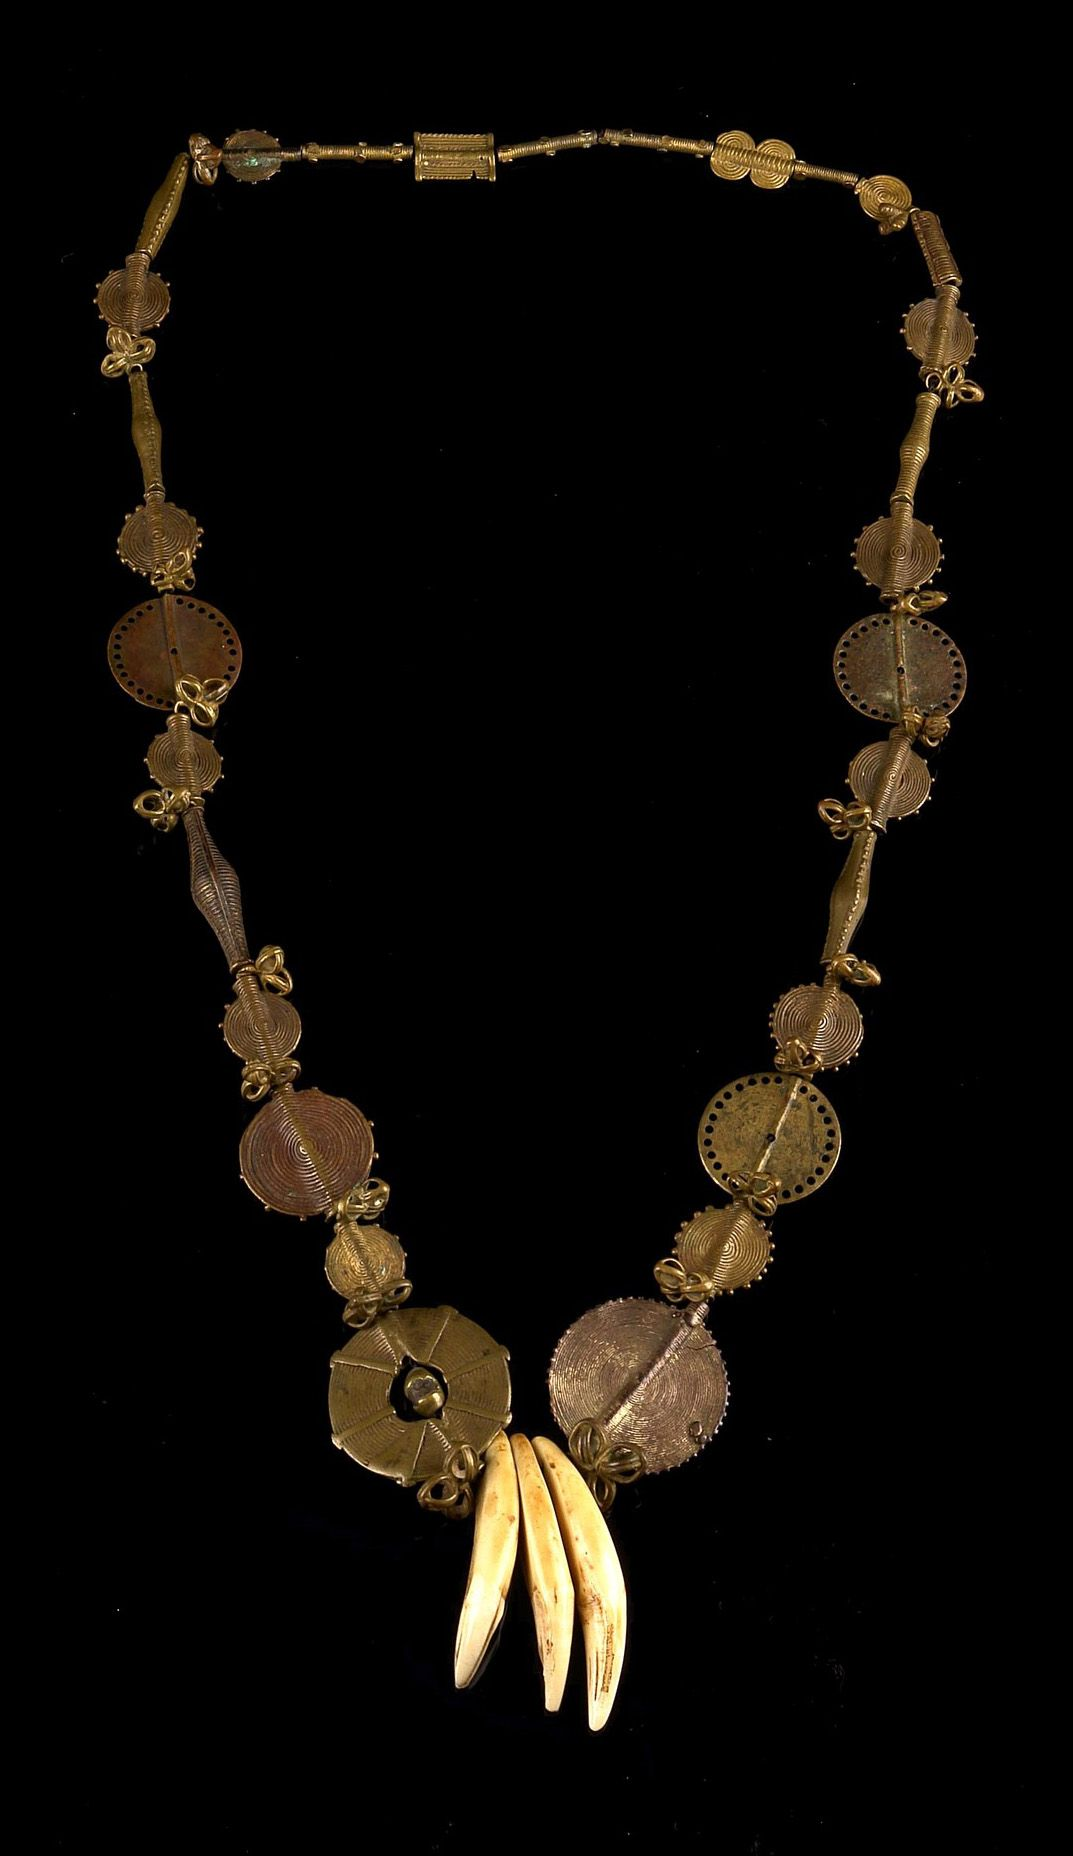 4b2c99adf Africa | Necklace from the Ashanti people of Ghana | Brass, copper alloy |  Est. 500 - 1000€